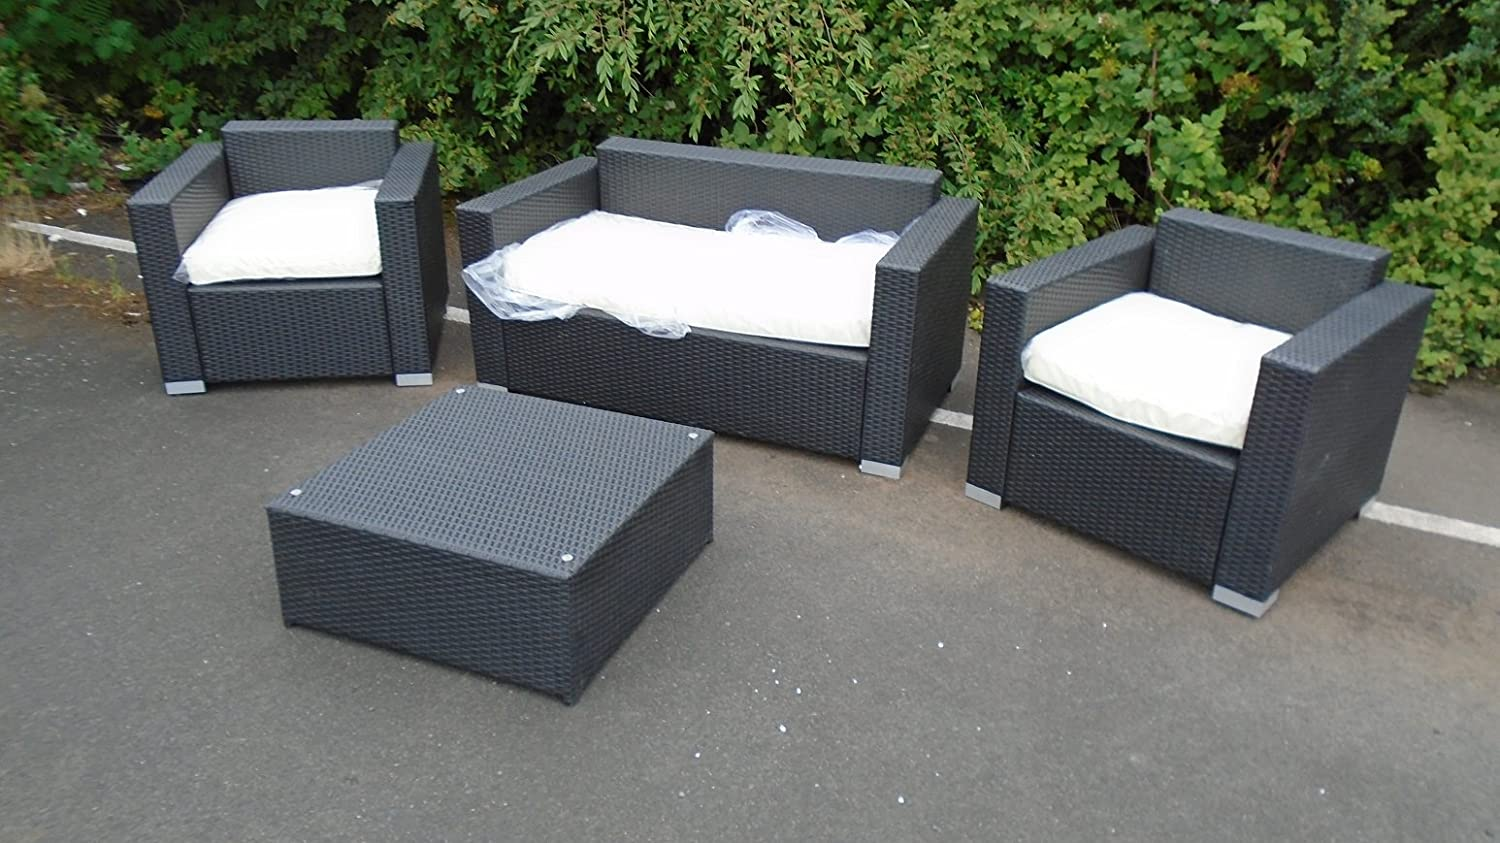 RATTAN 10 SEAT SOFA WITH TABLE & 10 ARM CHAIRS EX-DISPLAY GARDEN